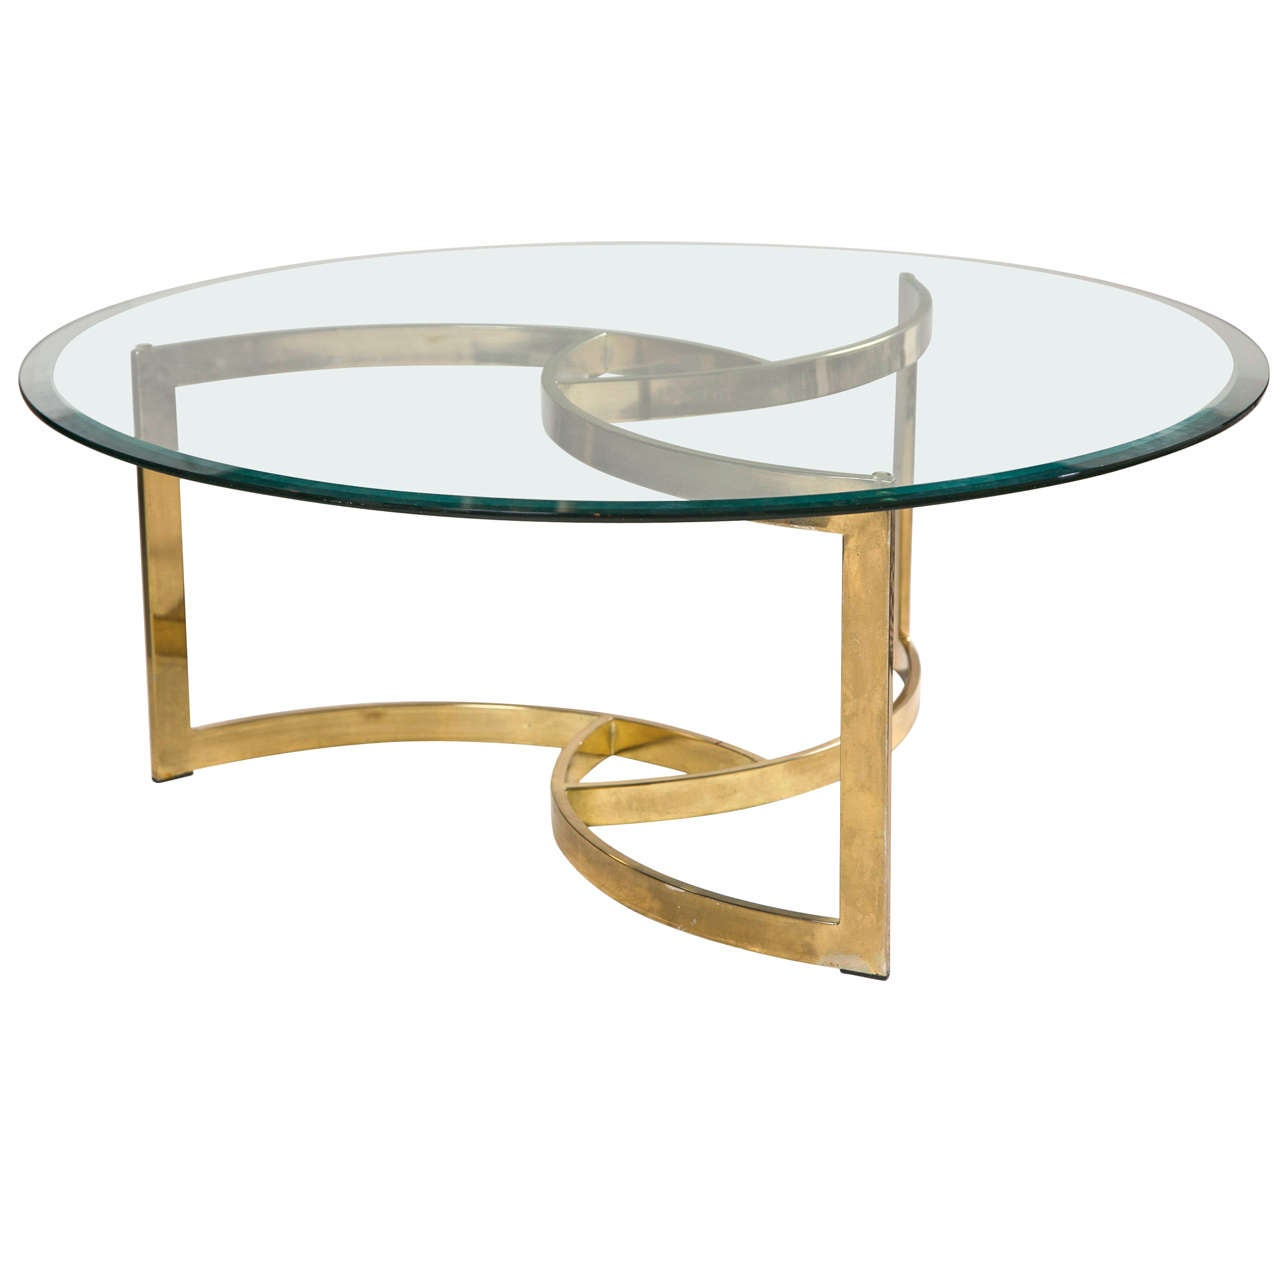 Round Glass Top Coffee Table Mid Century Brass Swirl Base With Round Glass Top Coffee Table